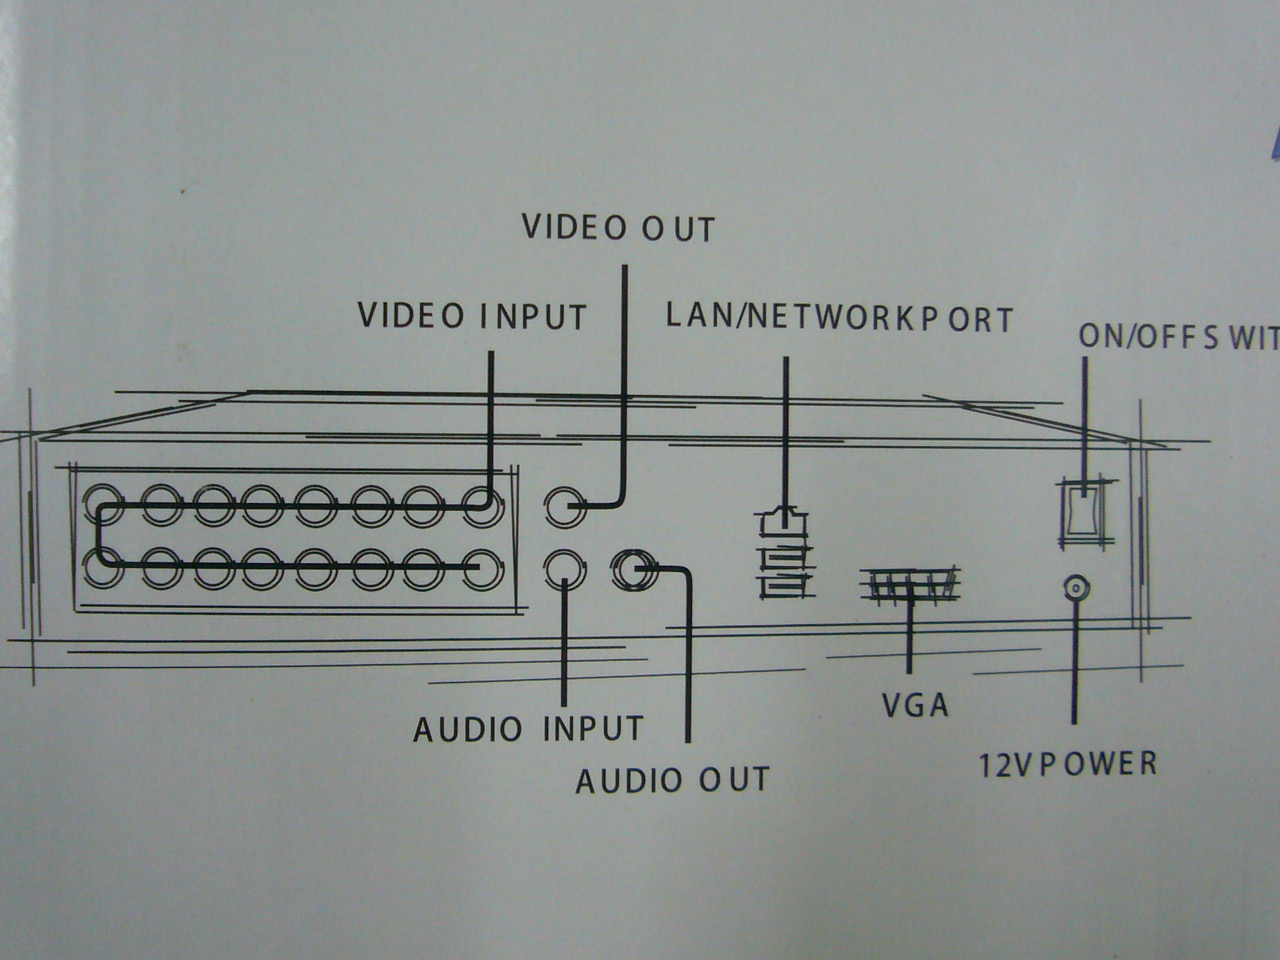 hight resolution of directv genie wiring diagram for 10 base t wiring diagramdvr system for cctv we value communicationwe